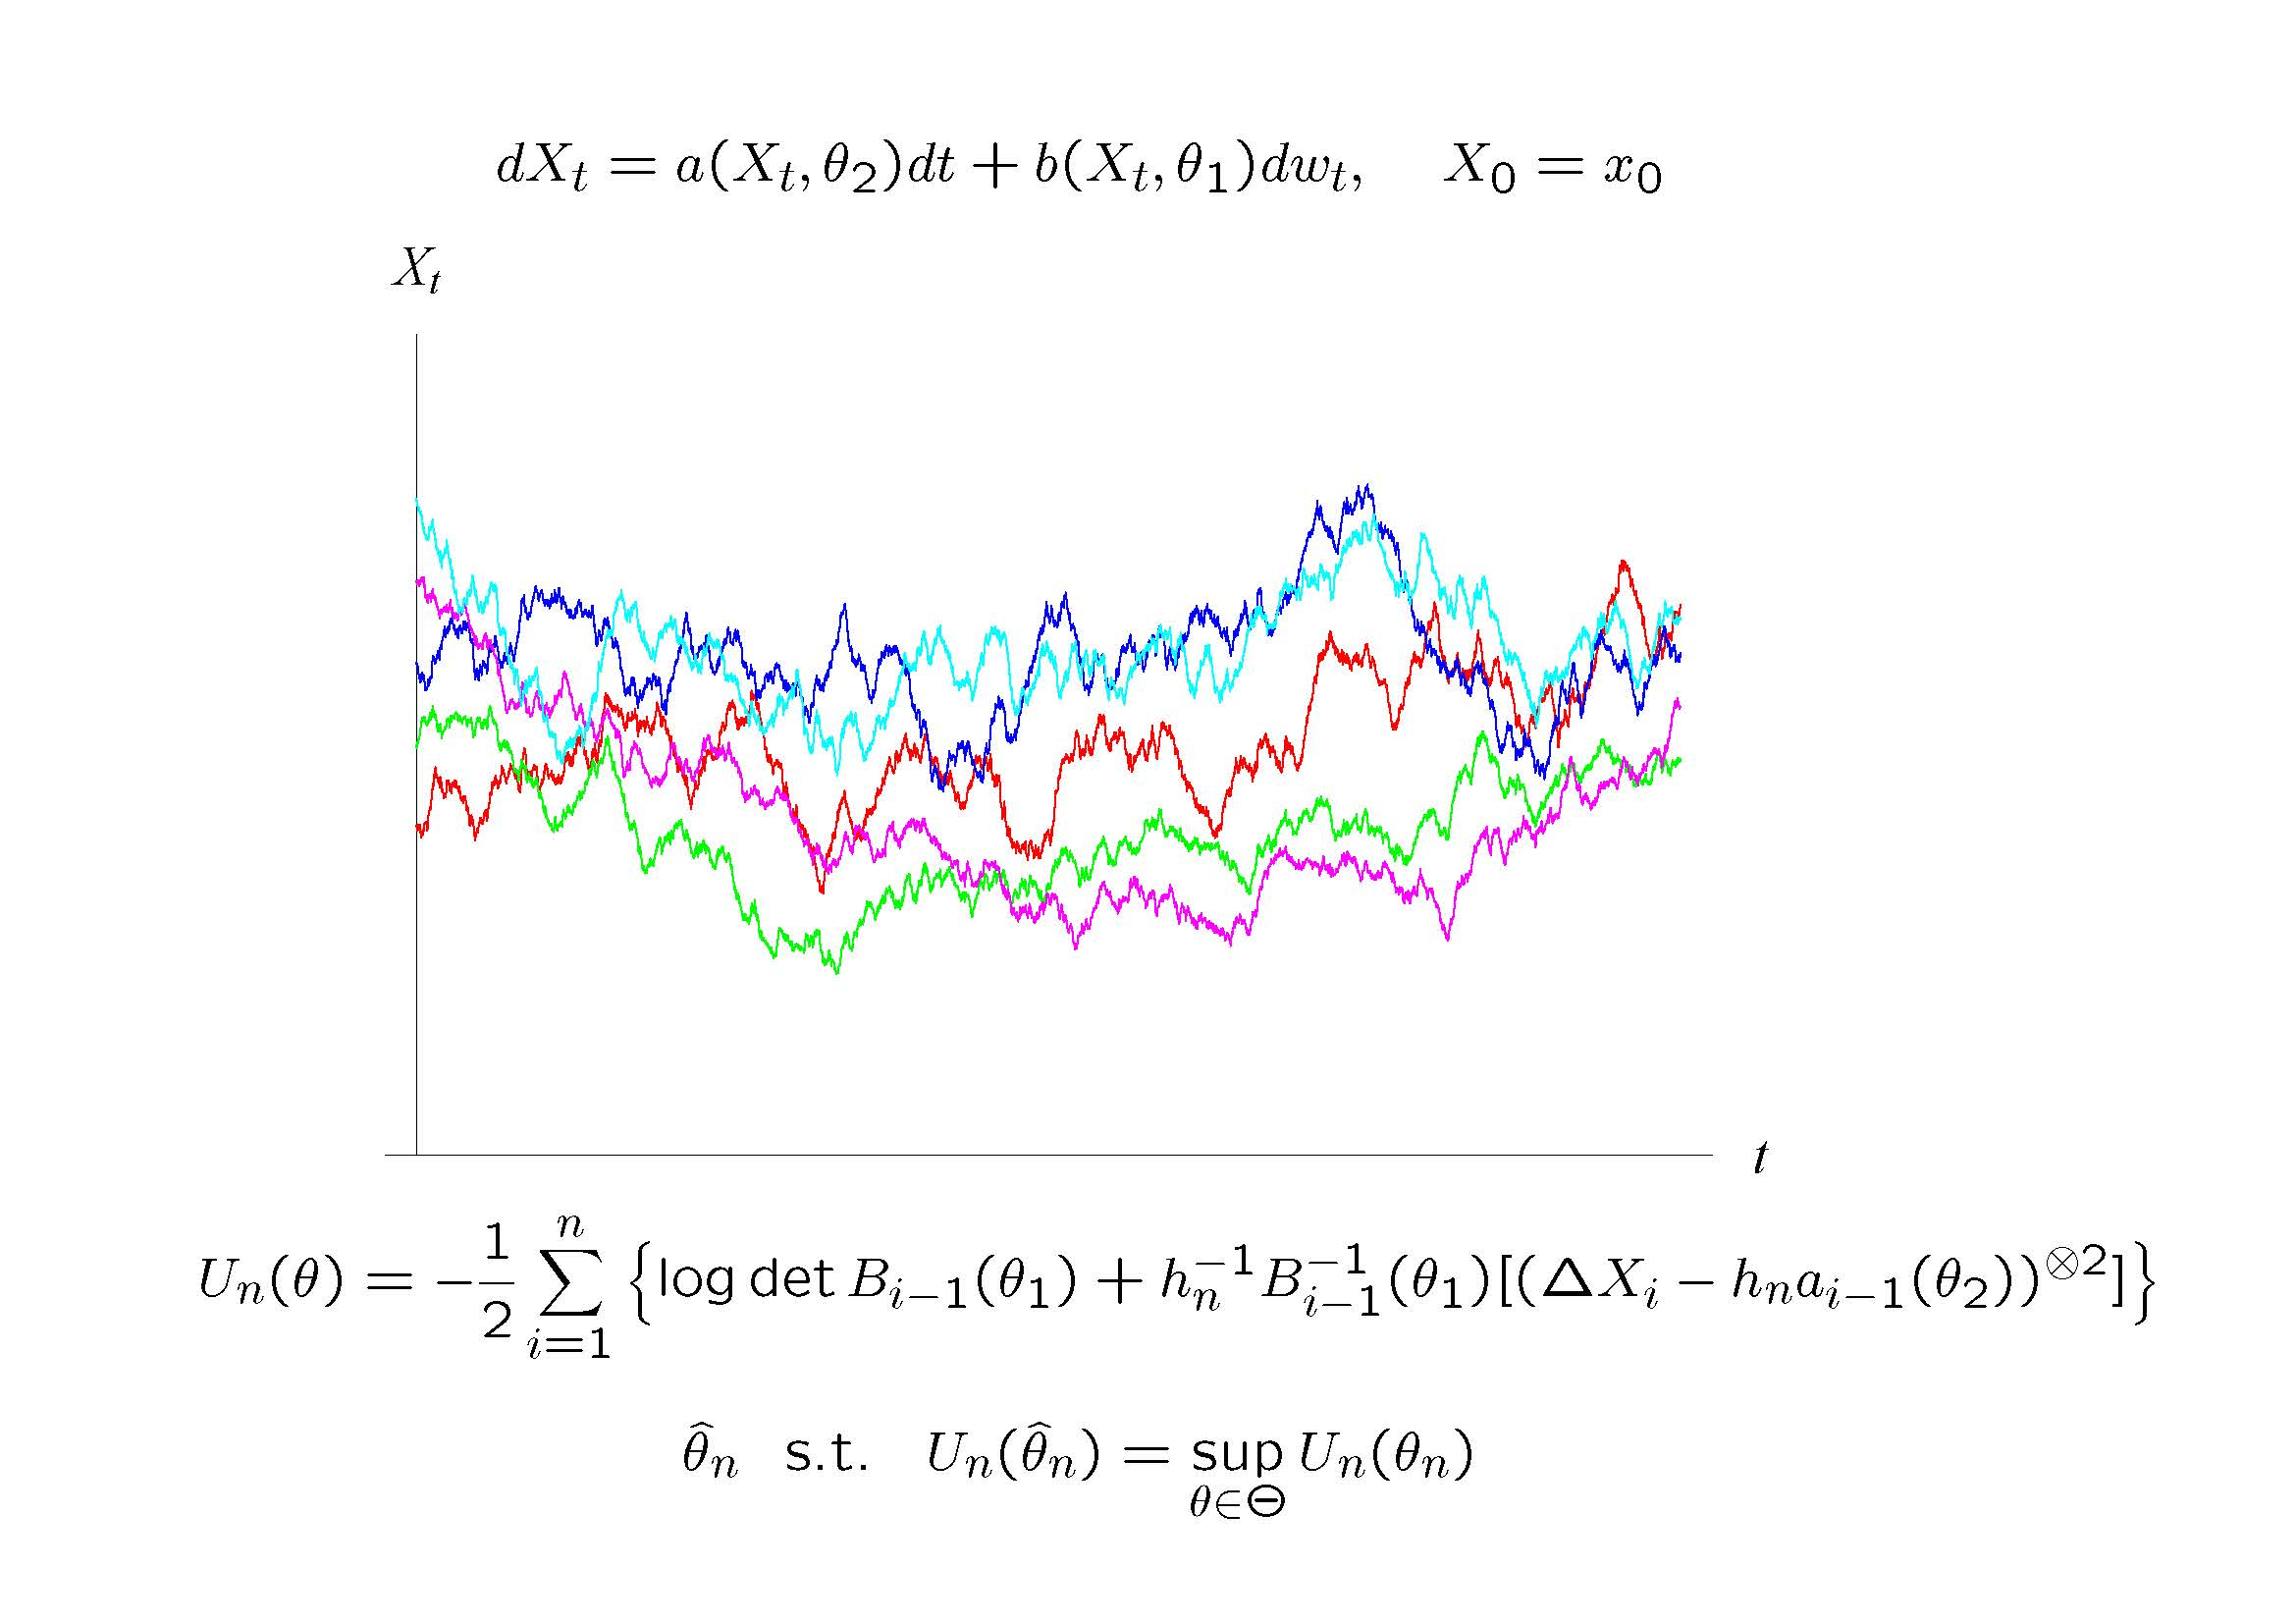 Sample paths of a stochastic differential equation and the maximum likelihood type estimator